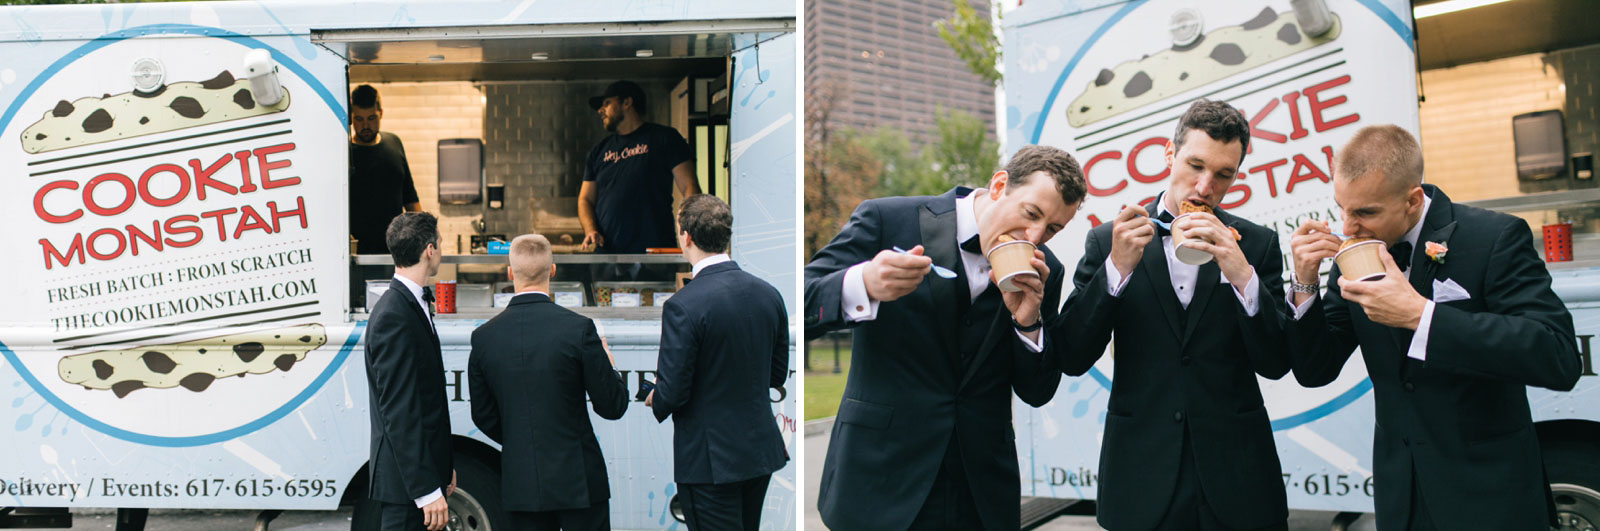 groomsmen stop at cookie monstah truck and eat ice cream sandwiches, goofy bridal party portraits